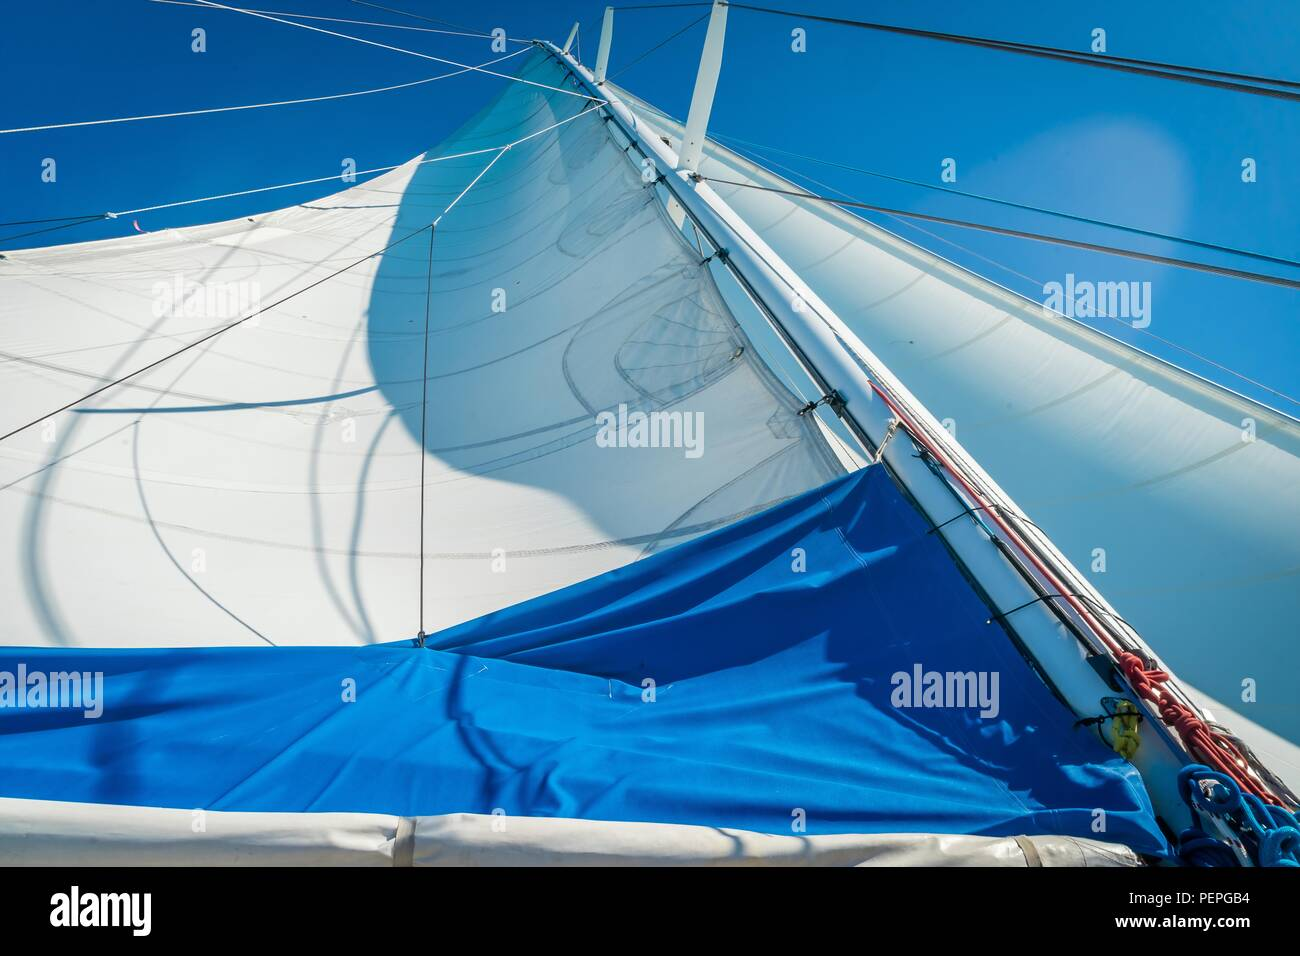 Sail of a monocoque boat seen from the bottom - Stock Image